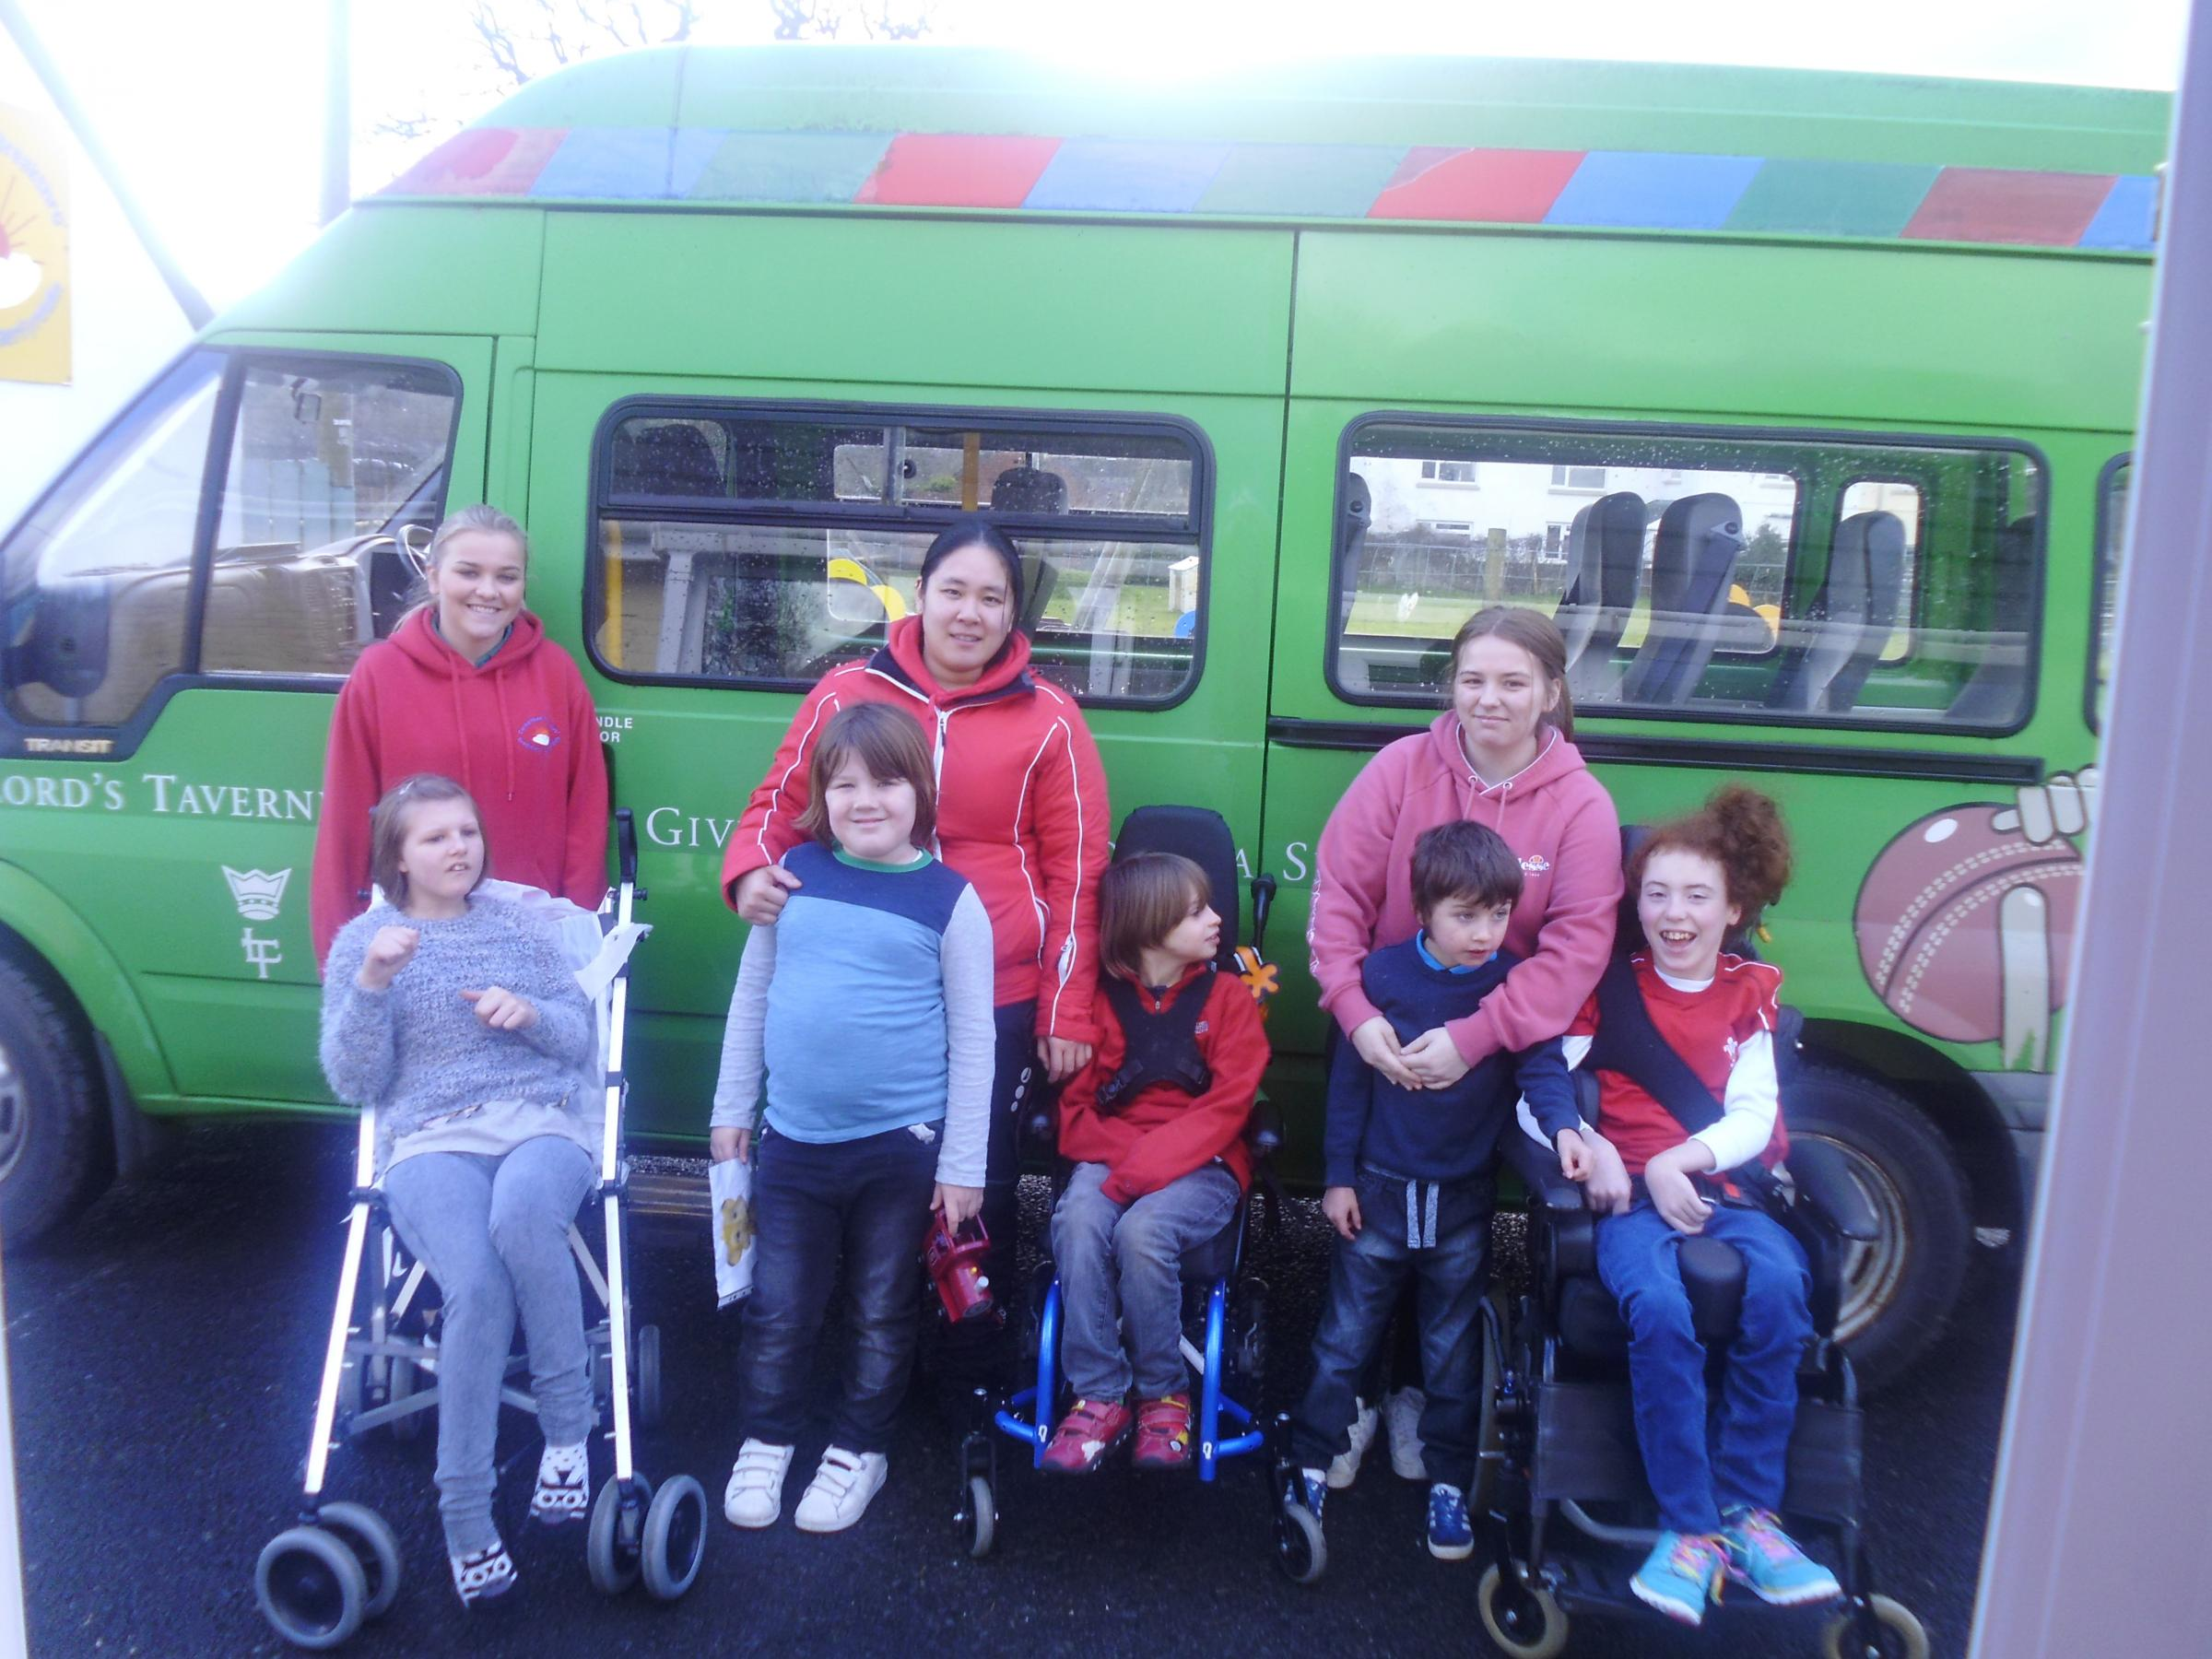 Carmarthen Breakthro are currently fundraising for a new minibus.